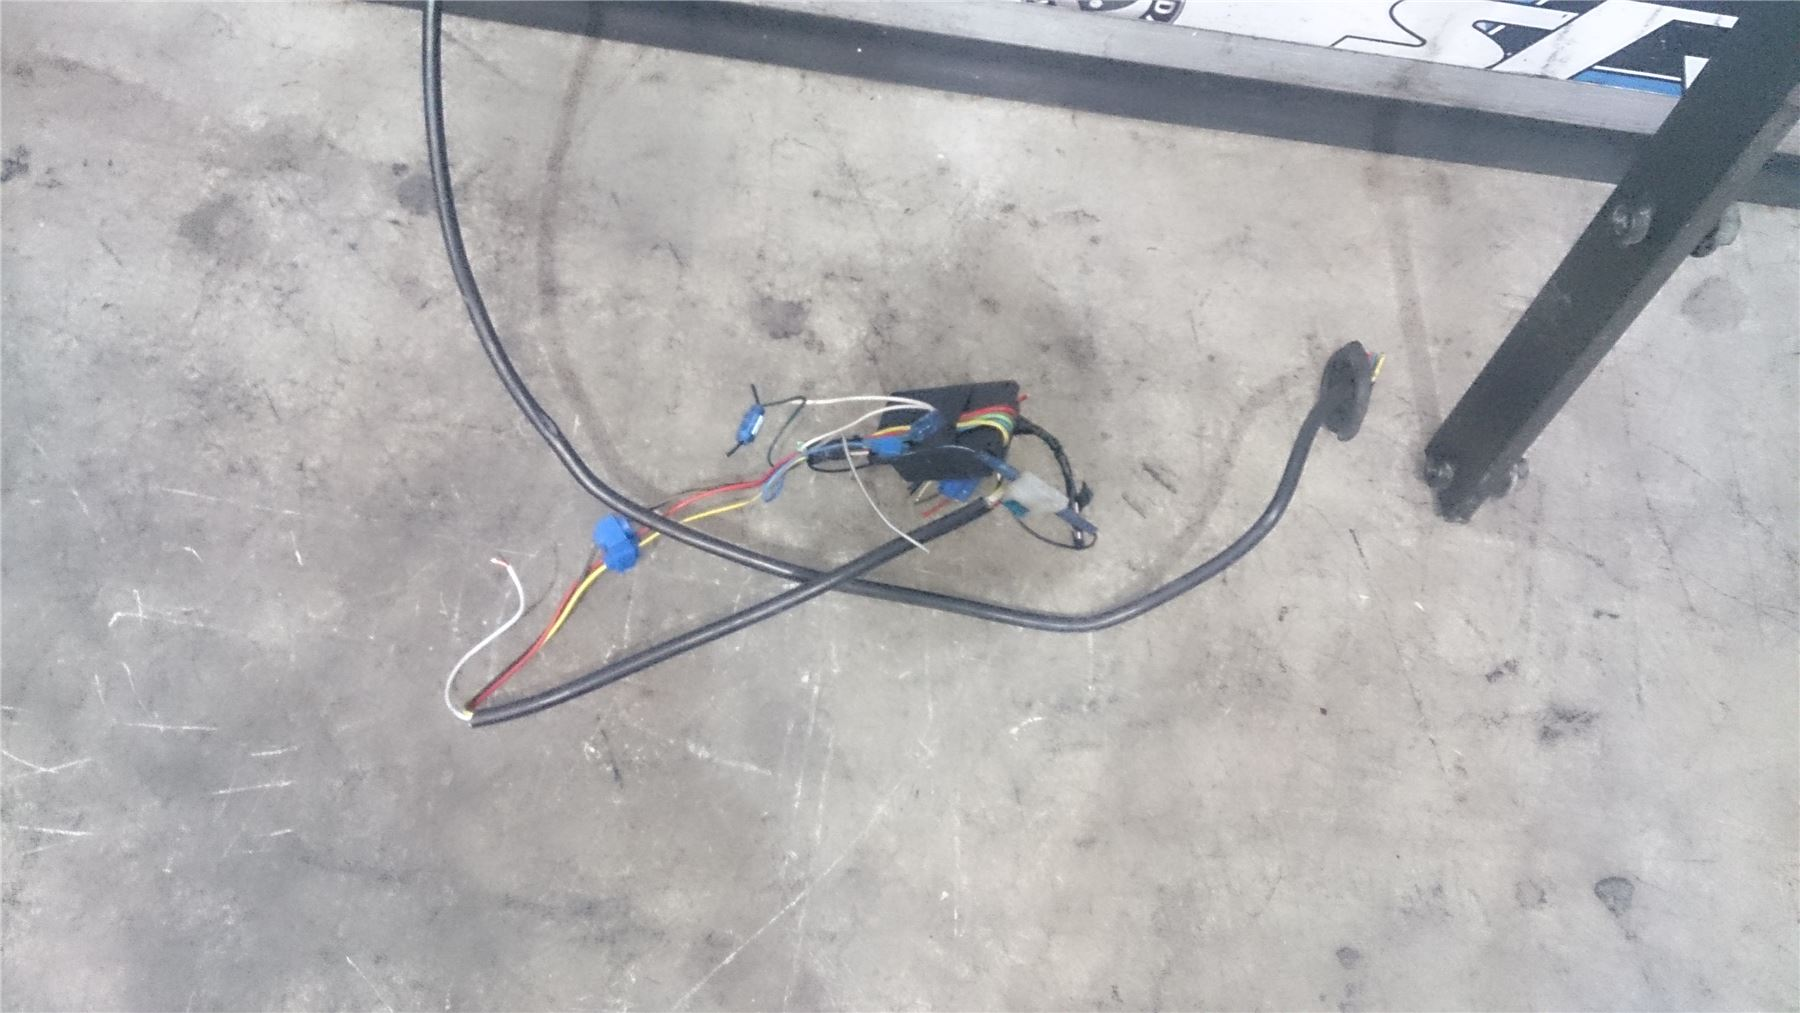 Genuine-VW-Touran-Tow-Bar-With-Electric-Power-Connections-2003-2012